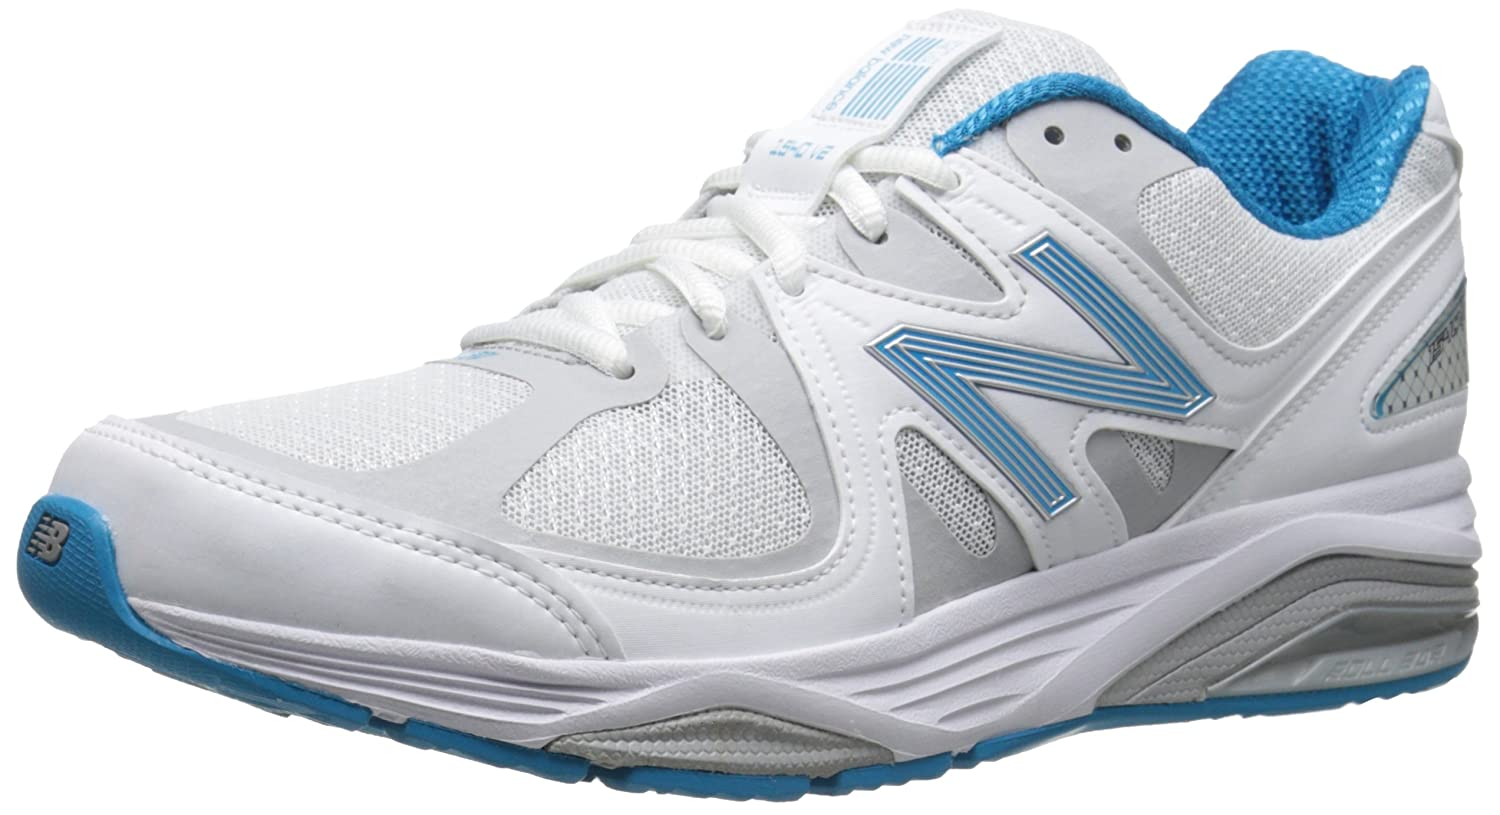 New Balance Women's W1540V2 Running Shoe B00KQ4COQS 5.5 W US|White/Blue